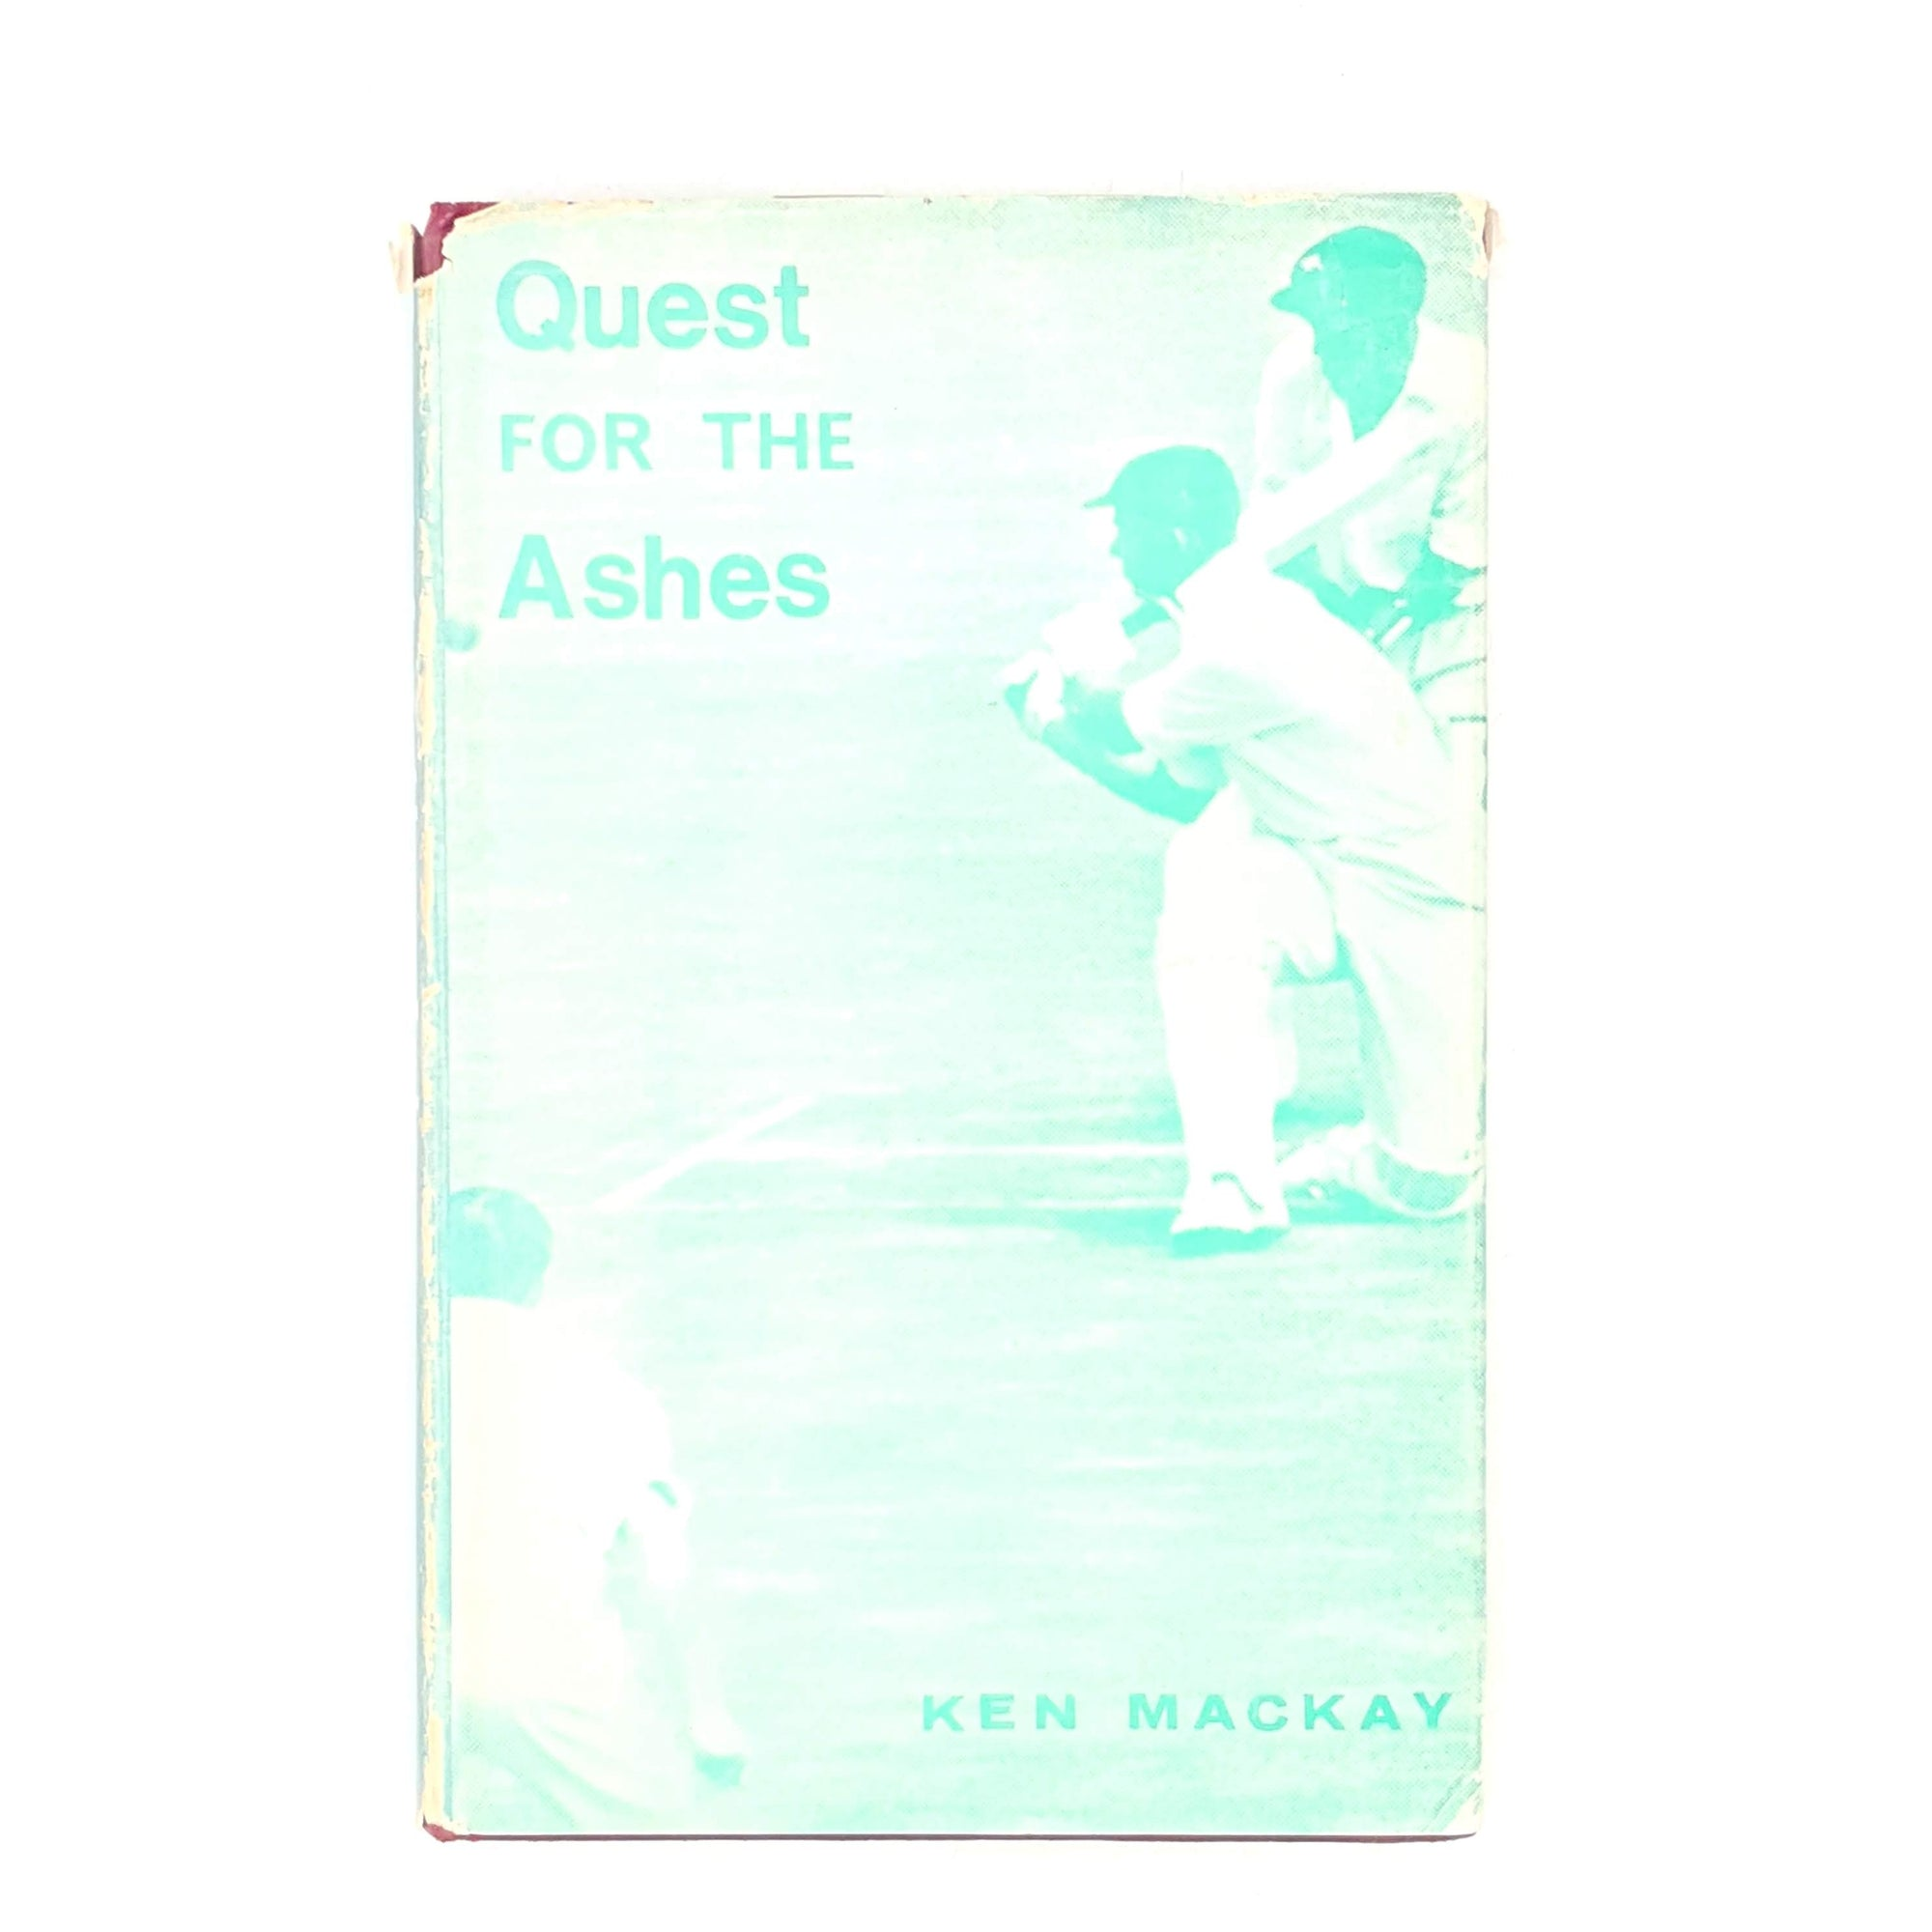 slasher-old-quest-for-the-ashes-country-house-library-vintage-1967-patterned-thrift-cricket-classic-sport-books-decorative-ken-mackay-green-ashes-antique-